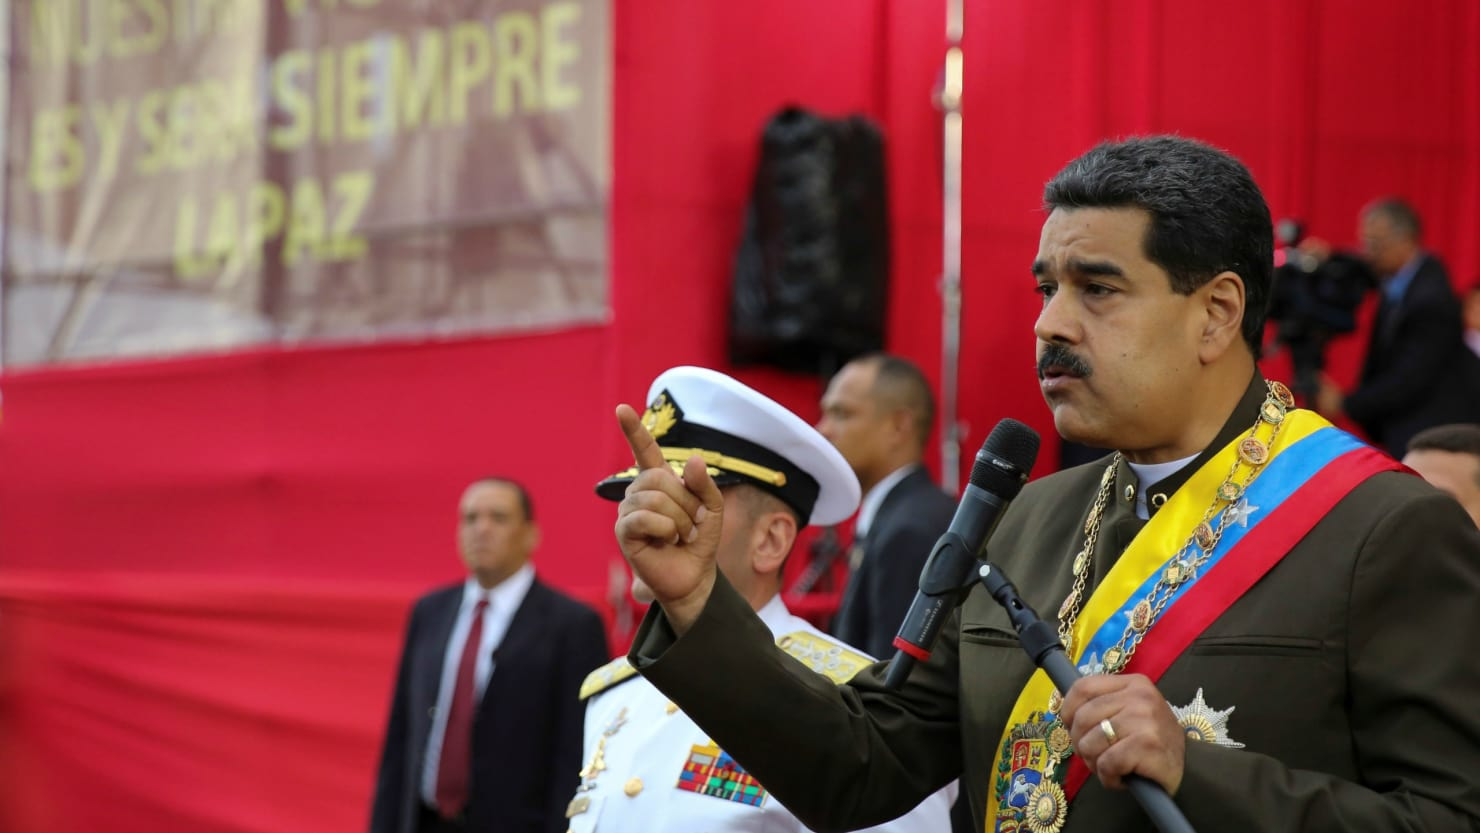 BREAKING: Venezuelan troops reportedly attempt 'uprising' against President Nicolas Maduro https://t.co/FyV0hrFyTG https://t.co/A0v3t4Aza6